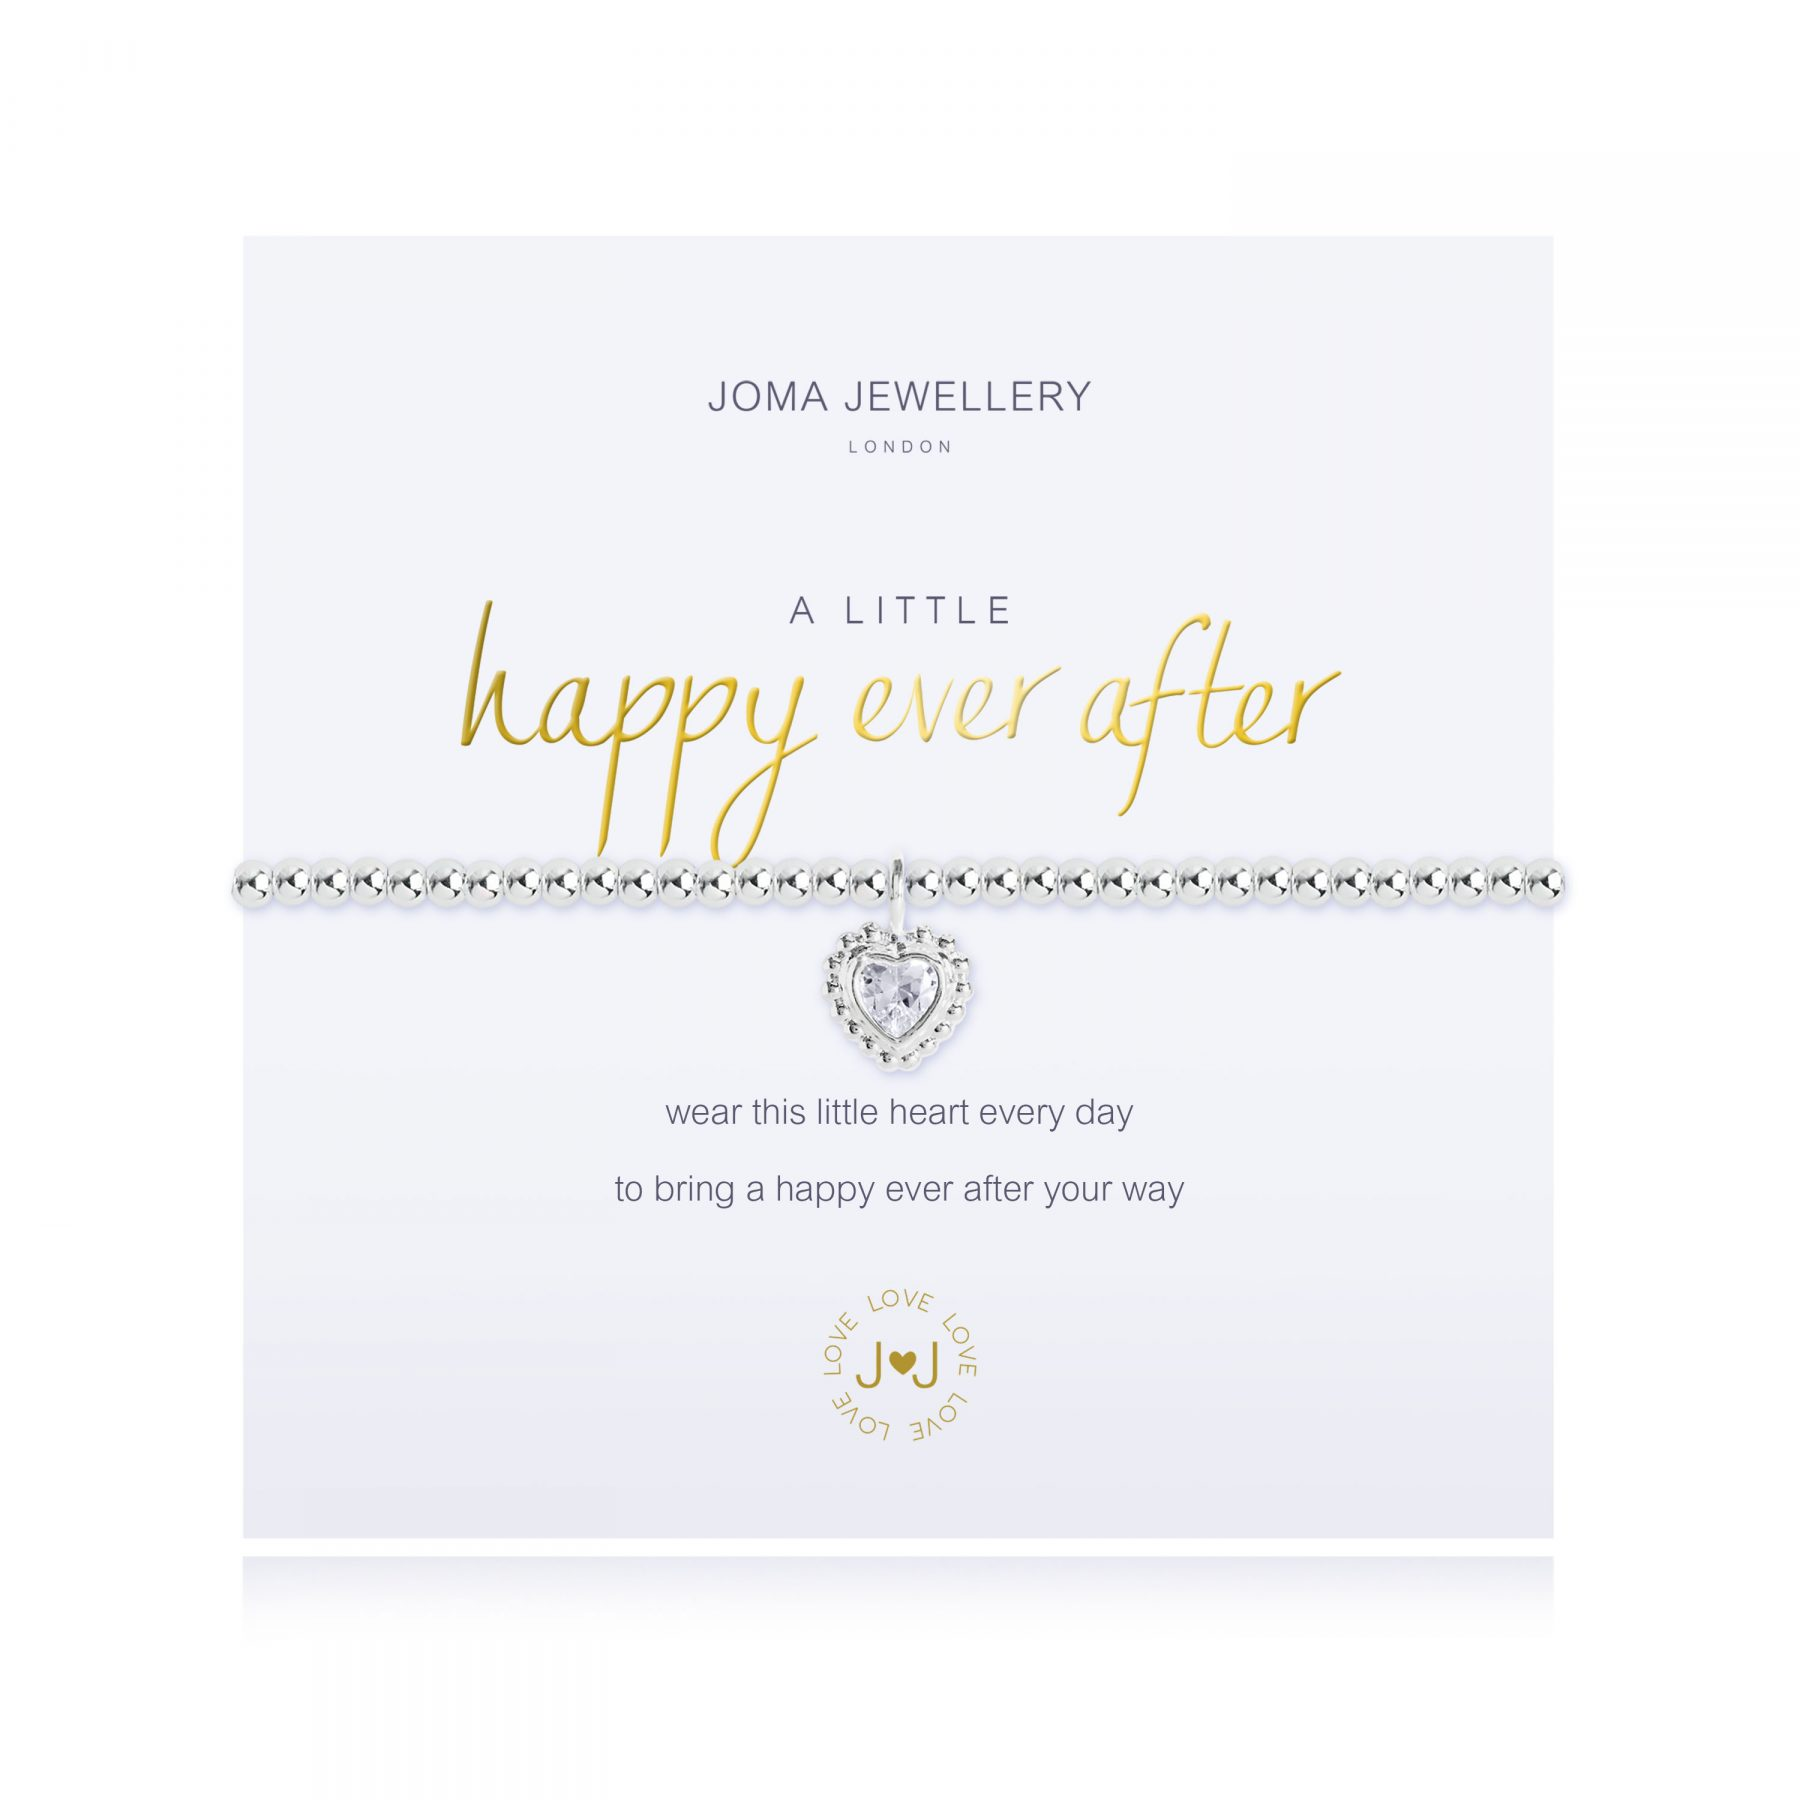 Joma Jewellery A Little Happy Ever After Bracelet